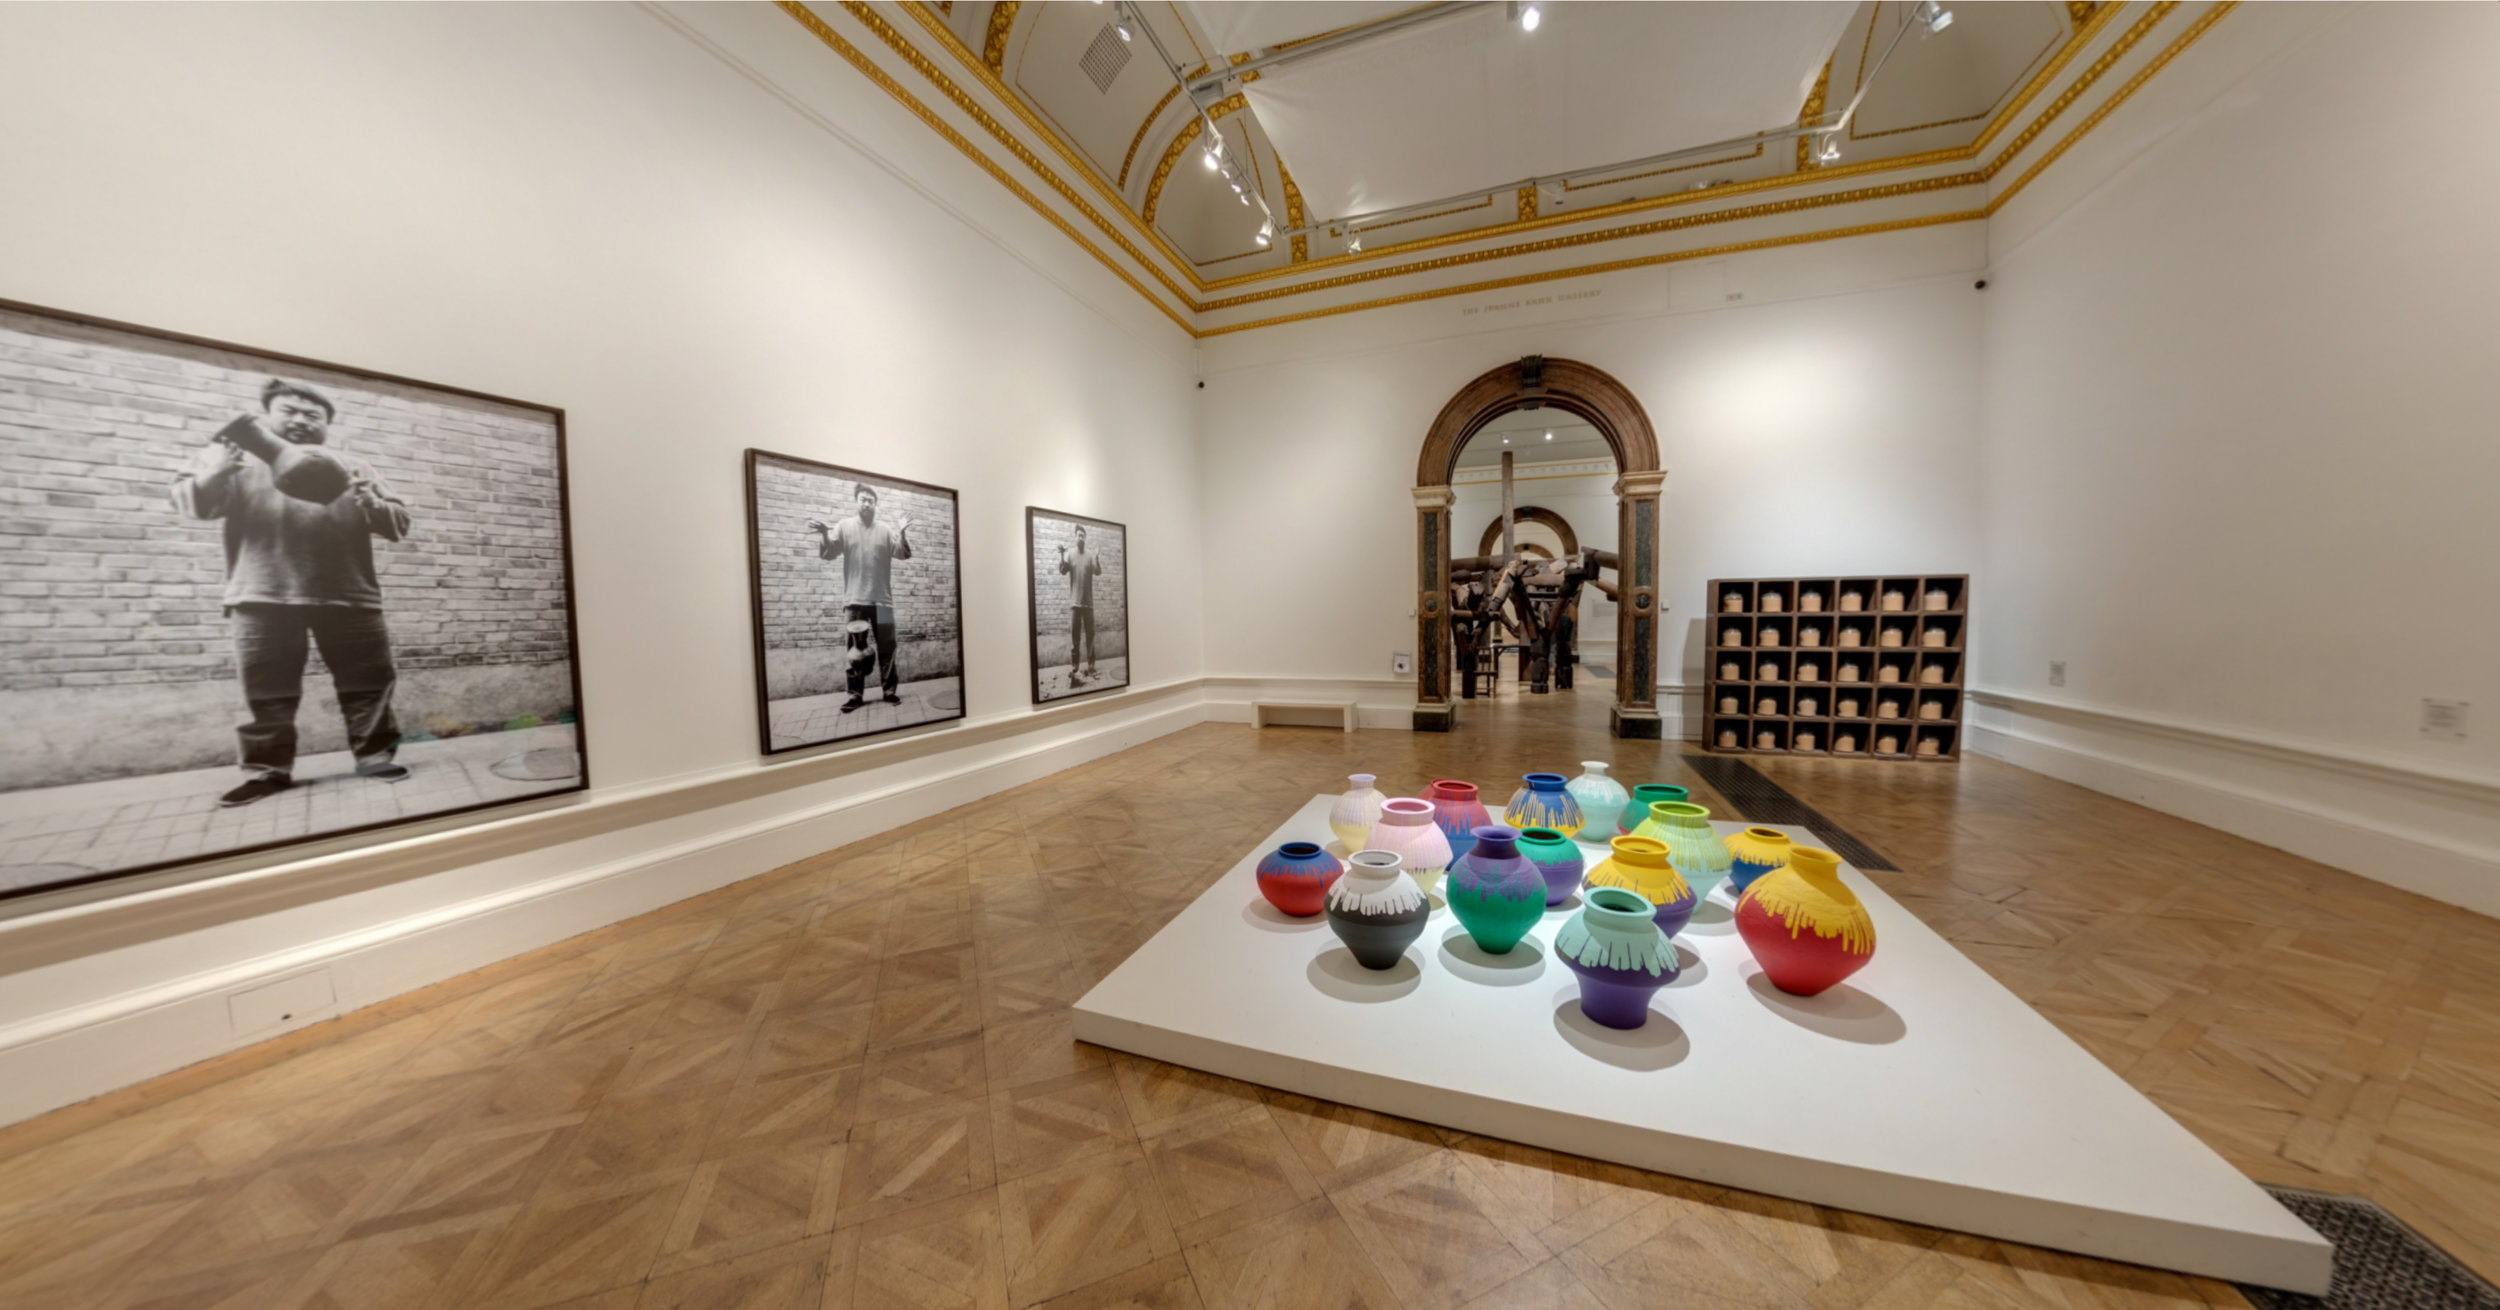 Ai Weiwei 360 Live Space, created for The Royal Academy of Arts